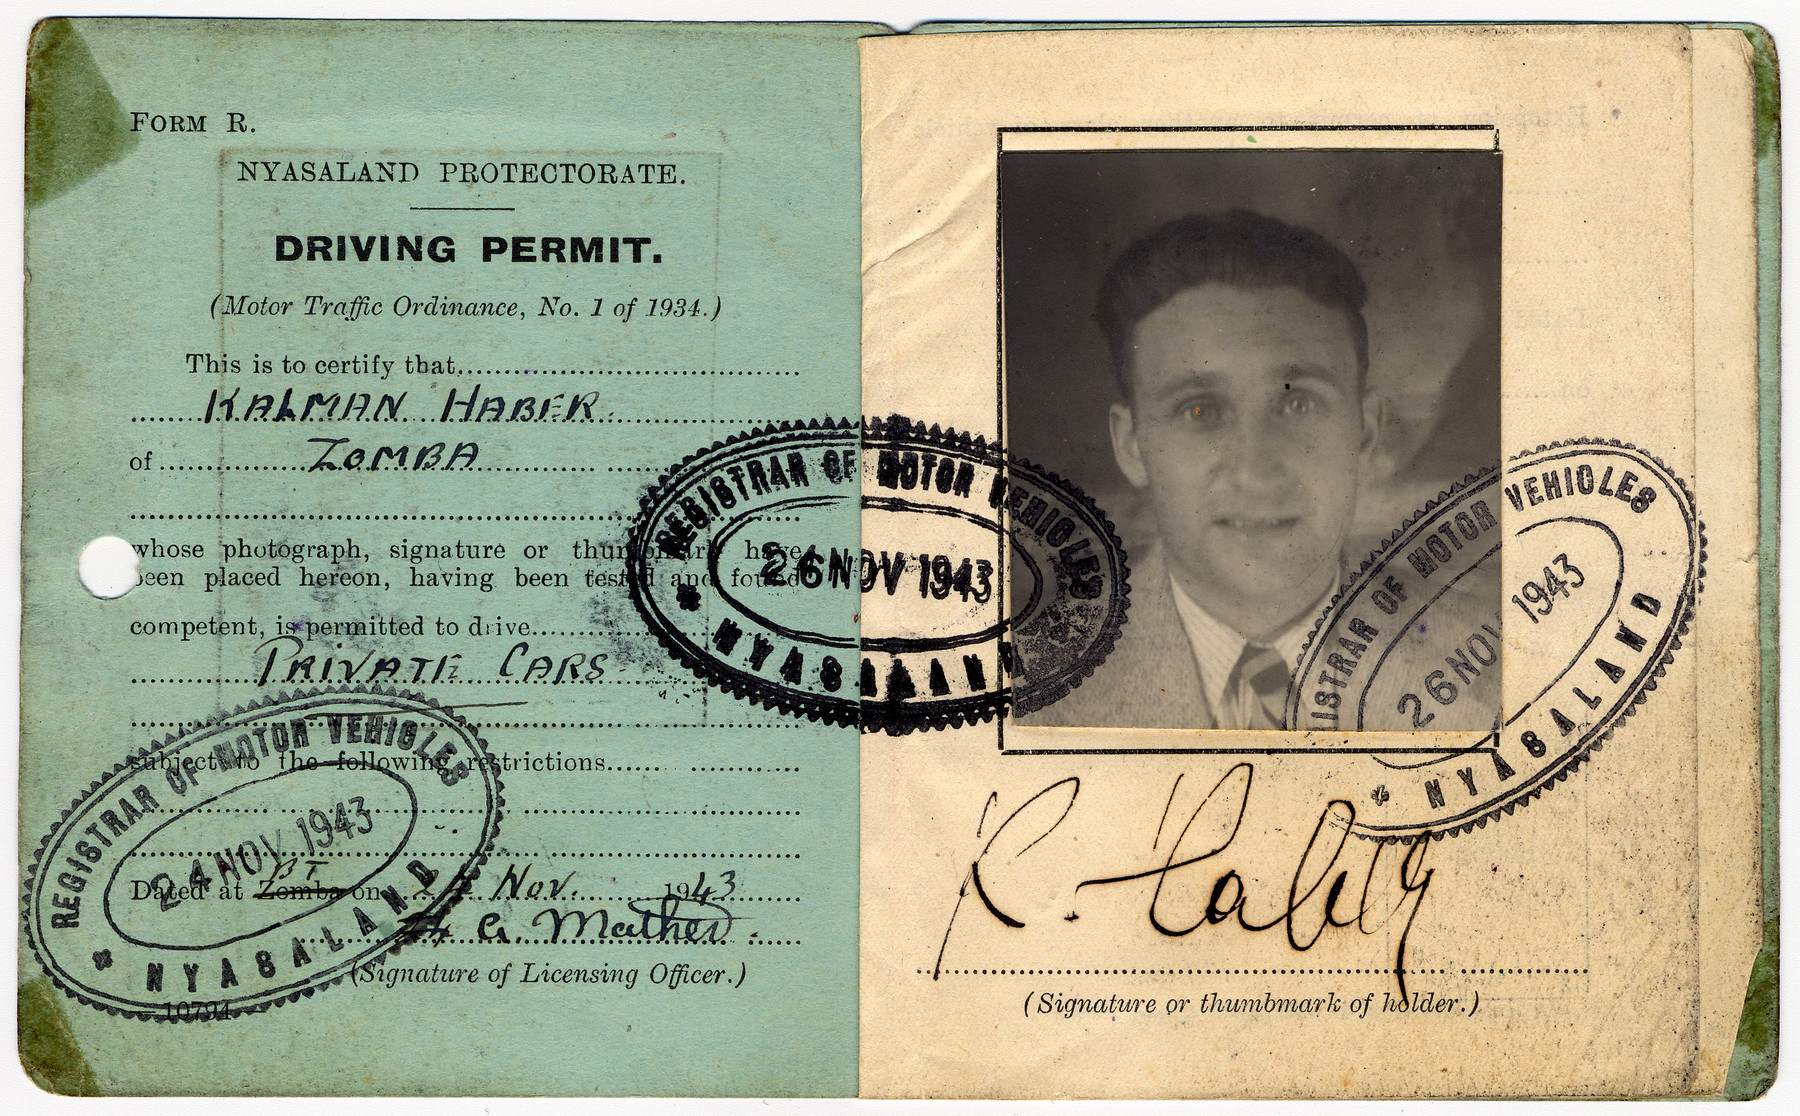 Driver's license issued to Kalman Haber, an Austrian Jew, who had been deported to Nyasaland as an enemy alien.